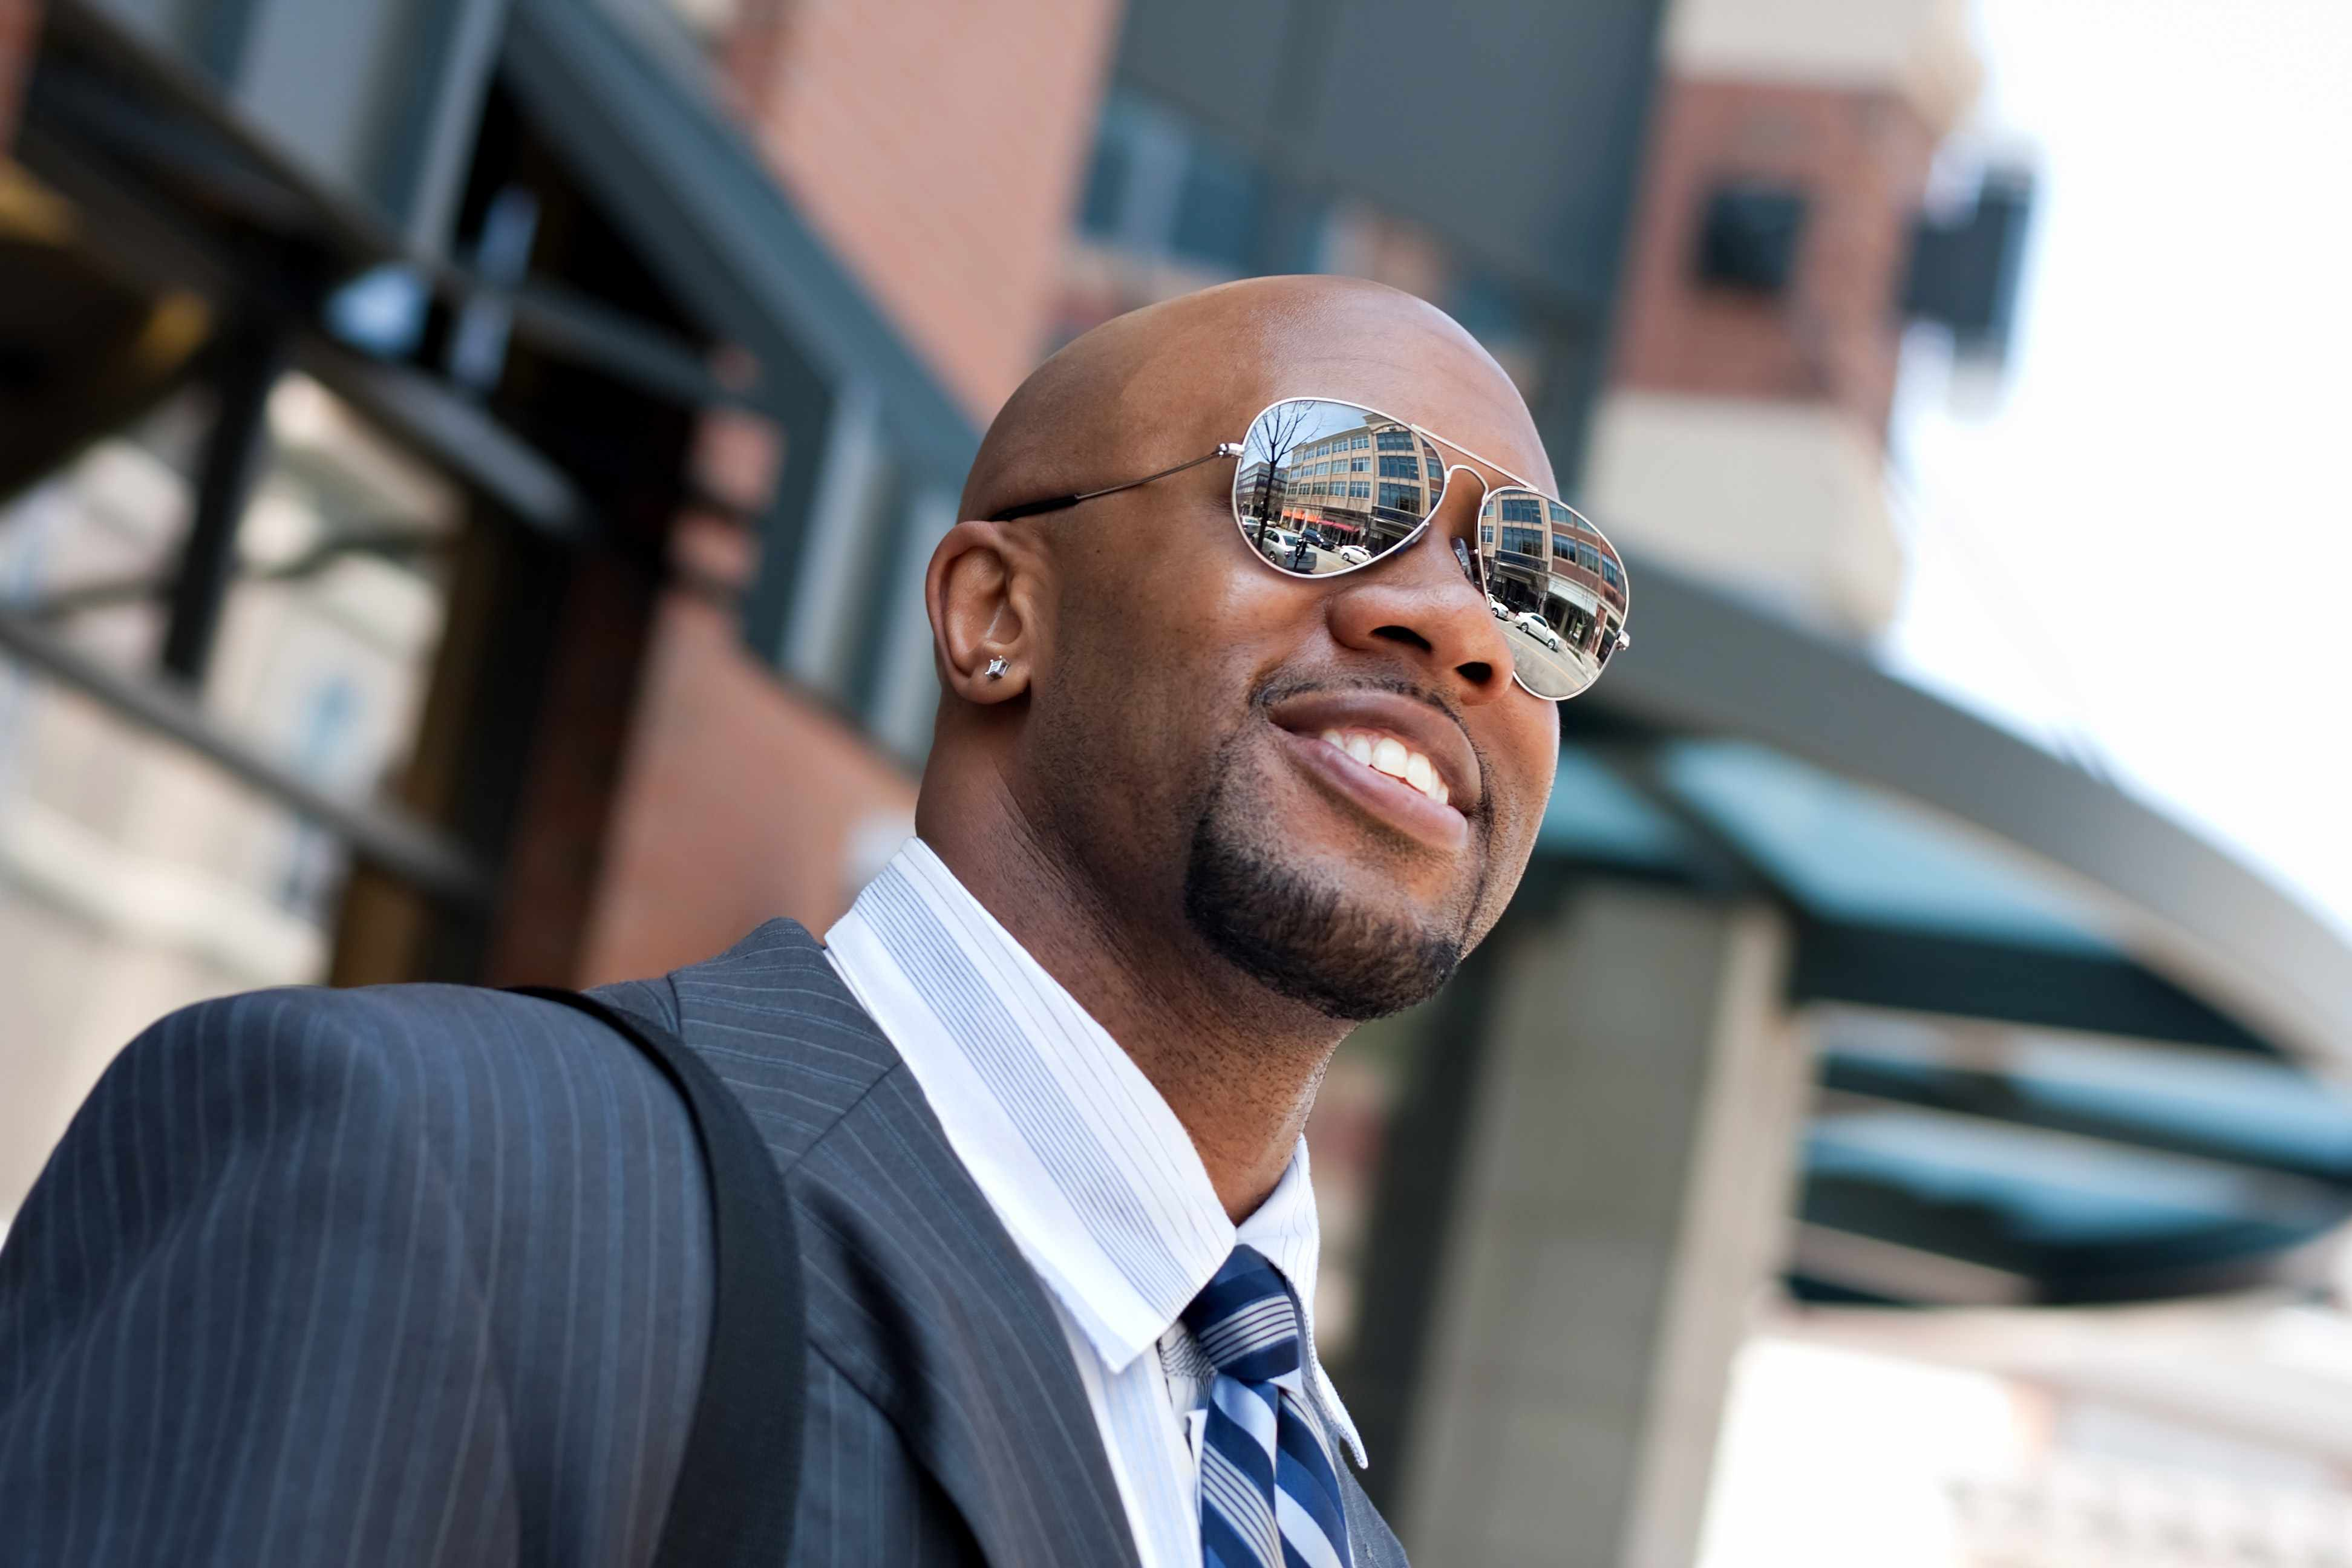 an African-American businessman in a suit wearing sunglasses